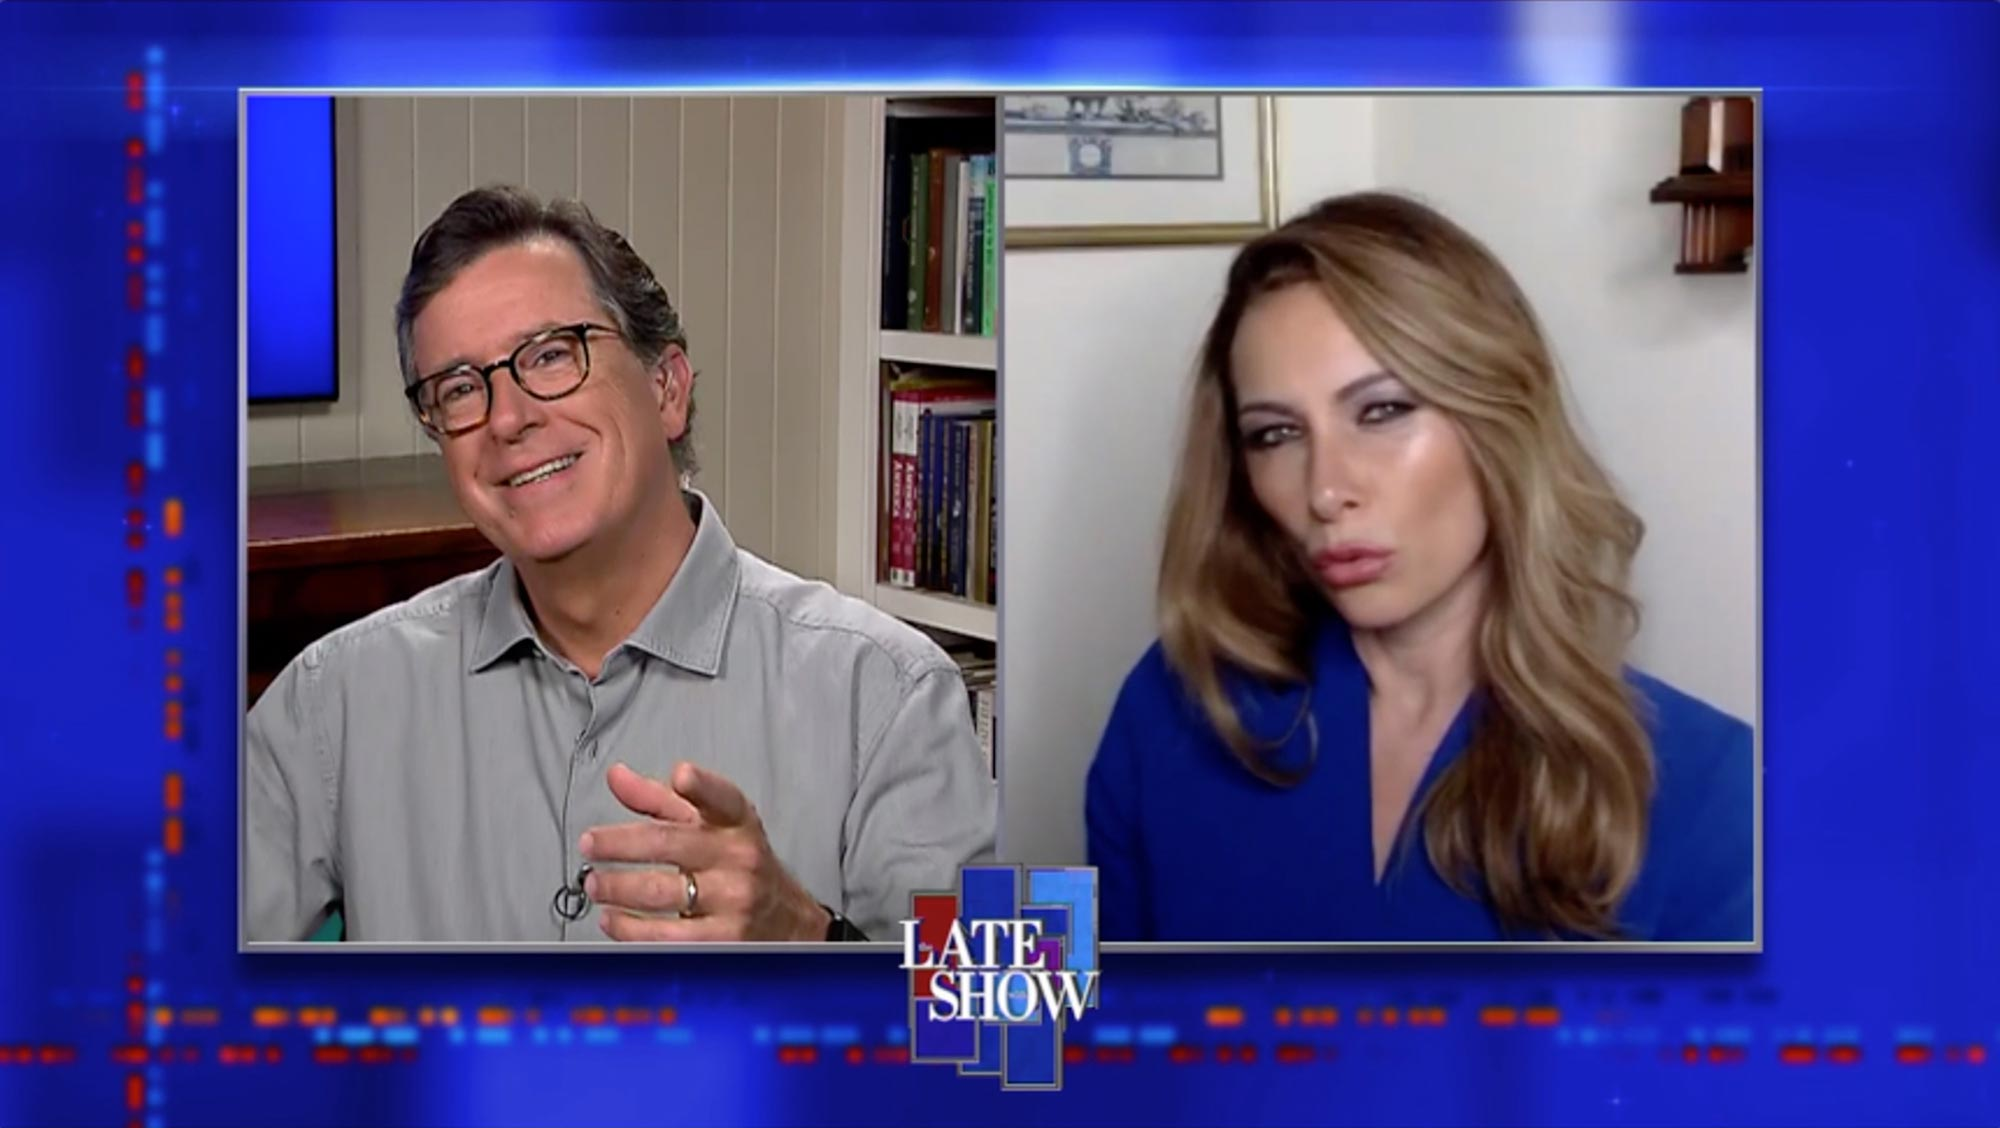 The Late Show with Stephen Colbert- Laura Benanti as Melania Trump